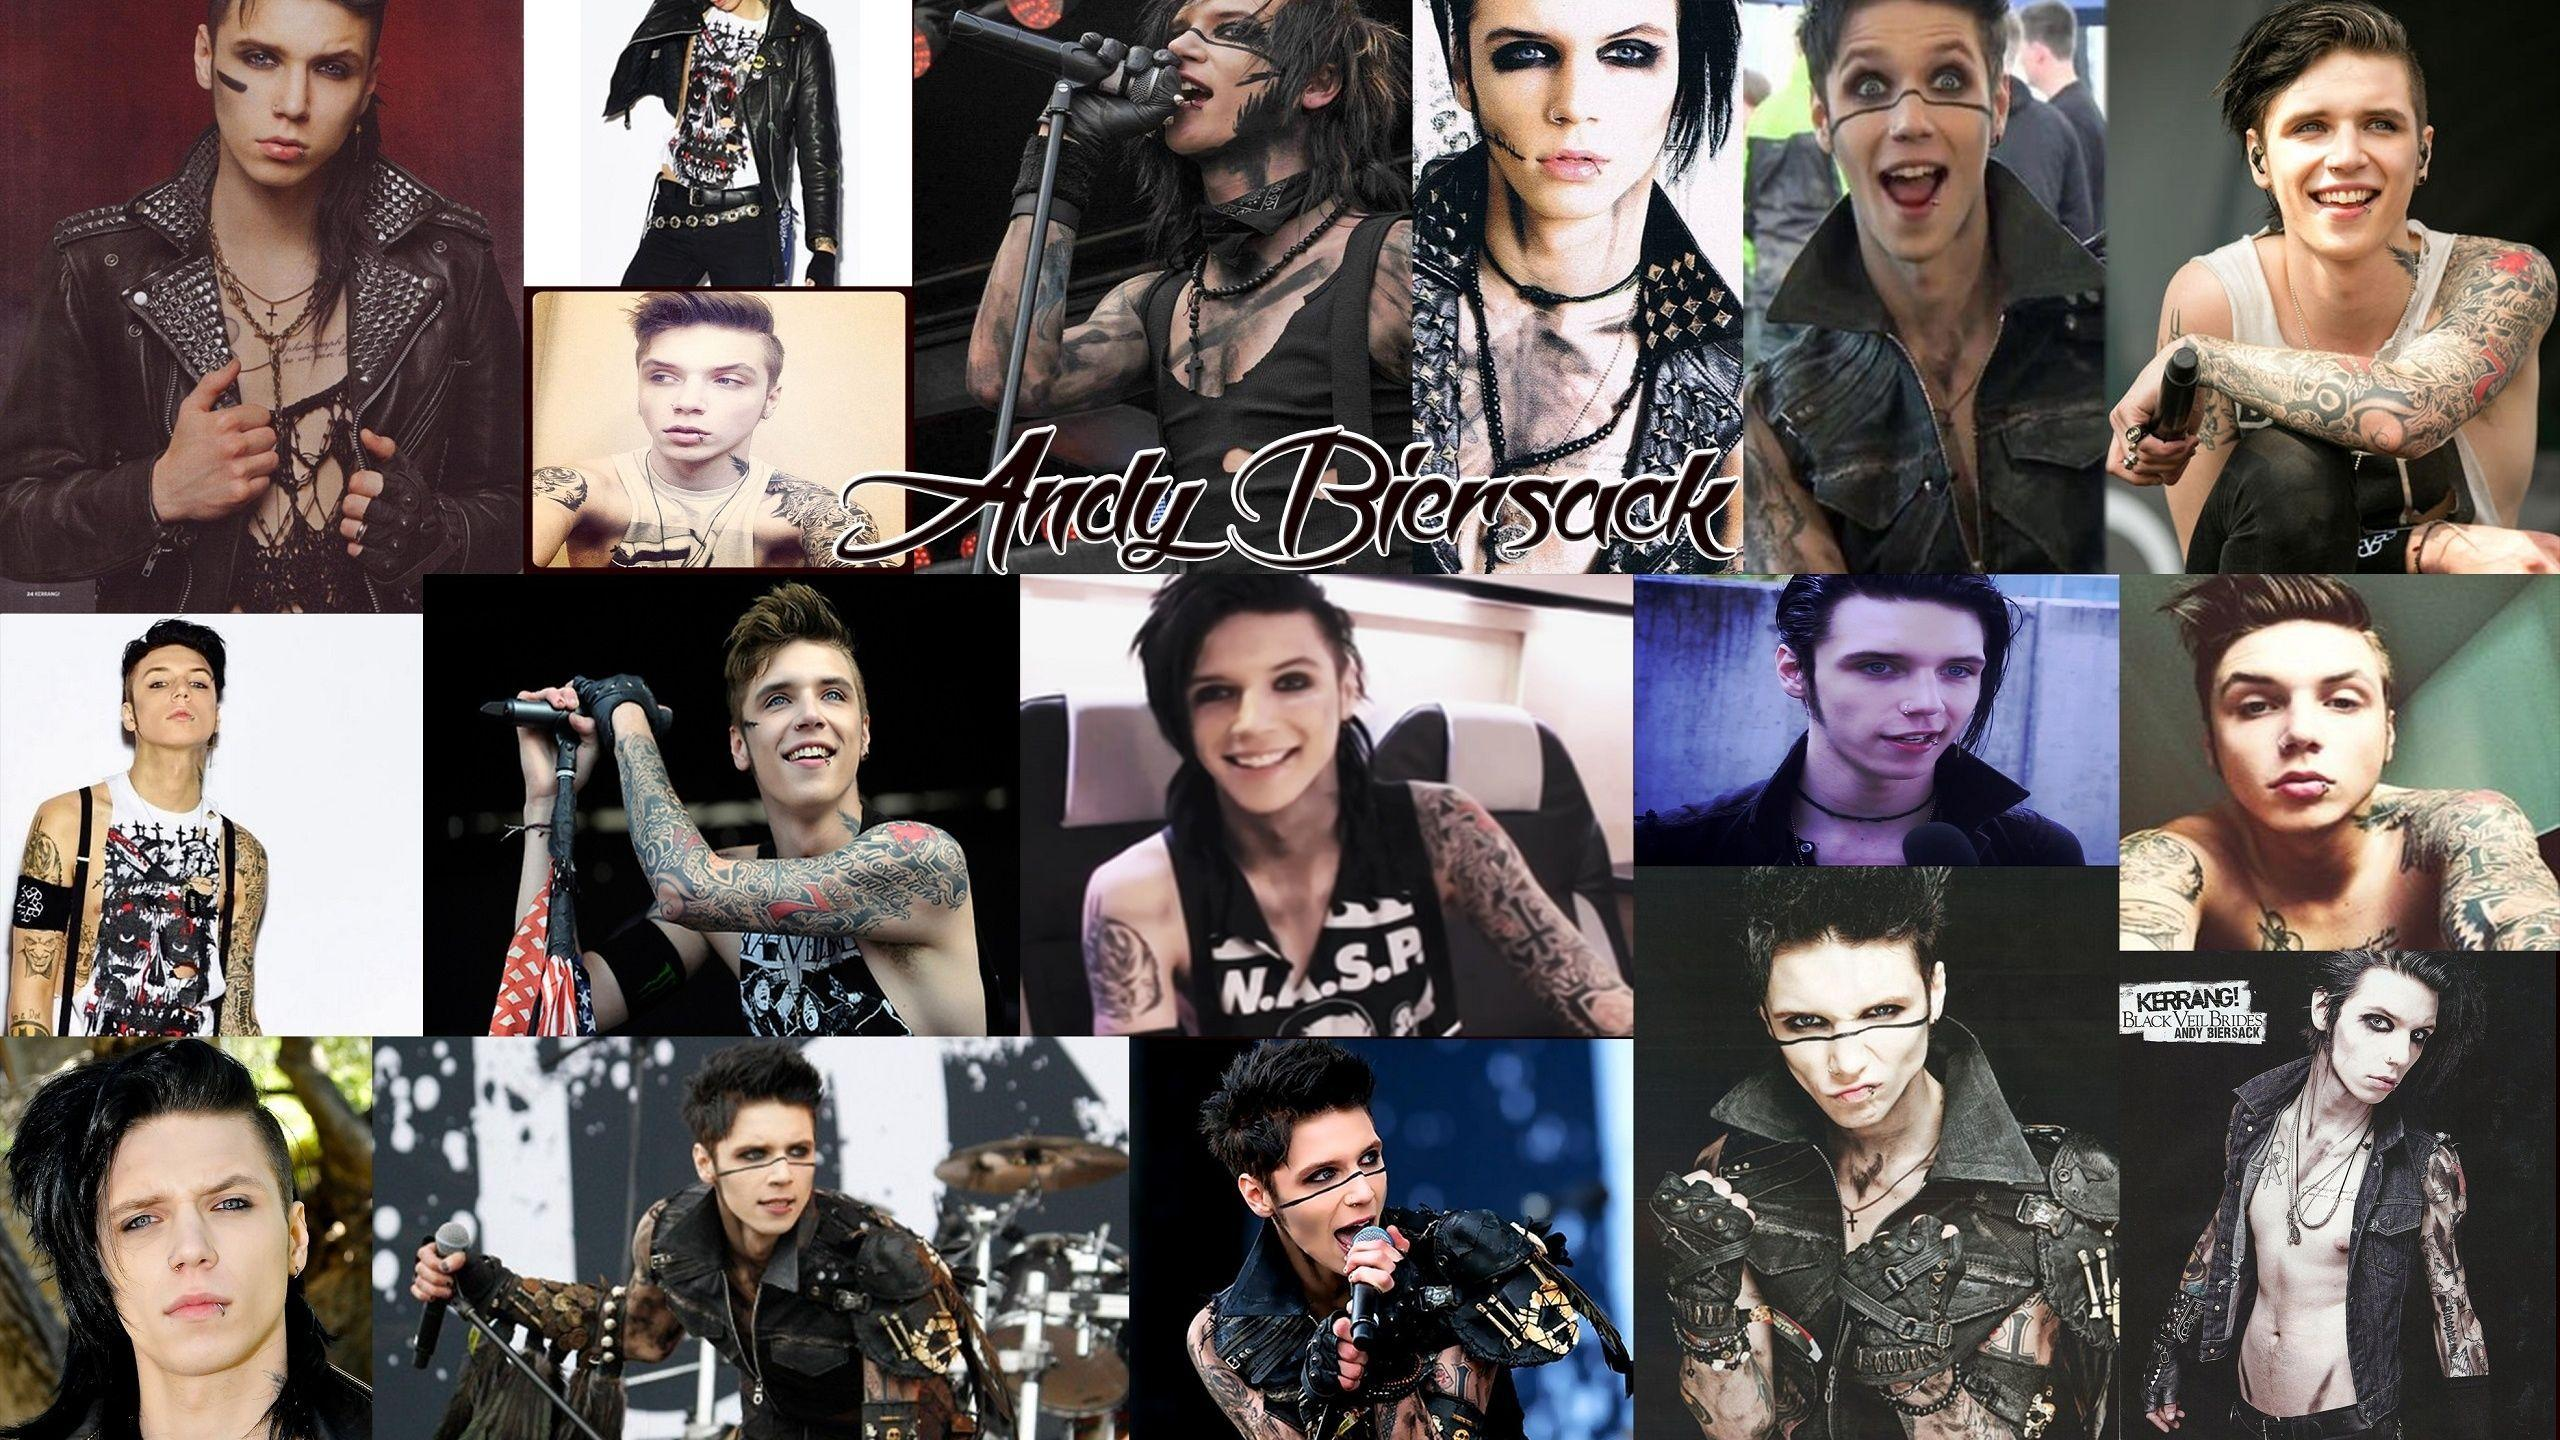 Andy Biersack 2017 Wallpapers - Wallpaper Cave